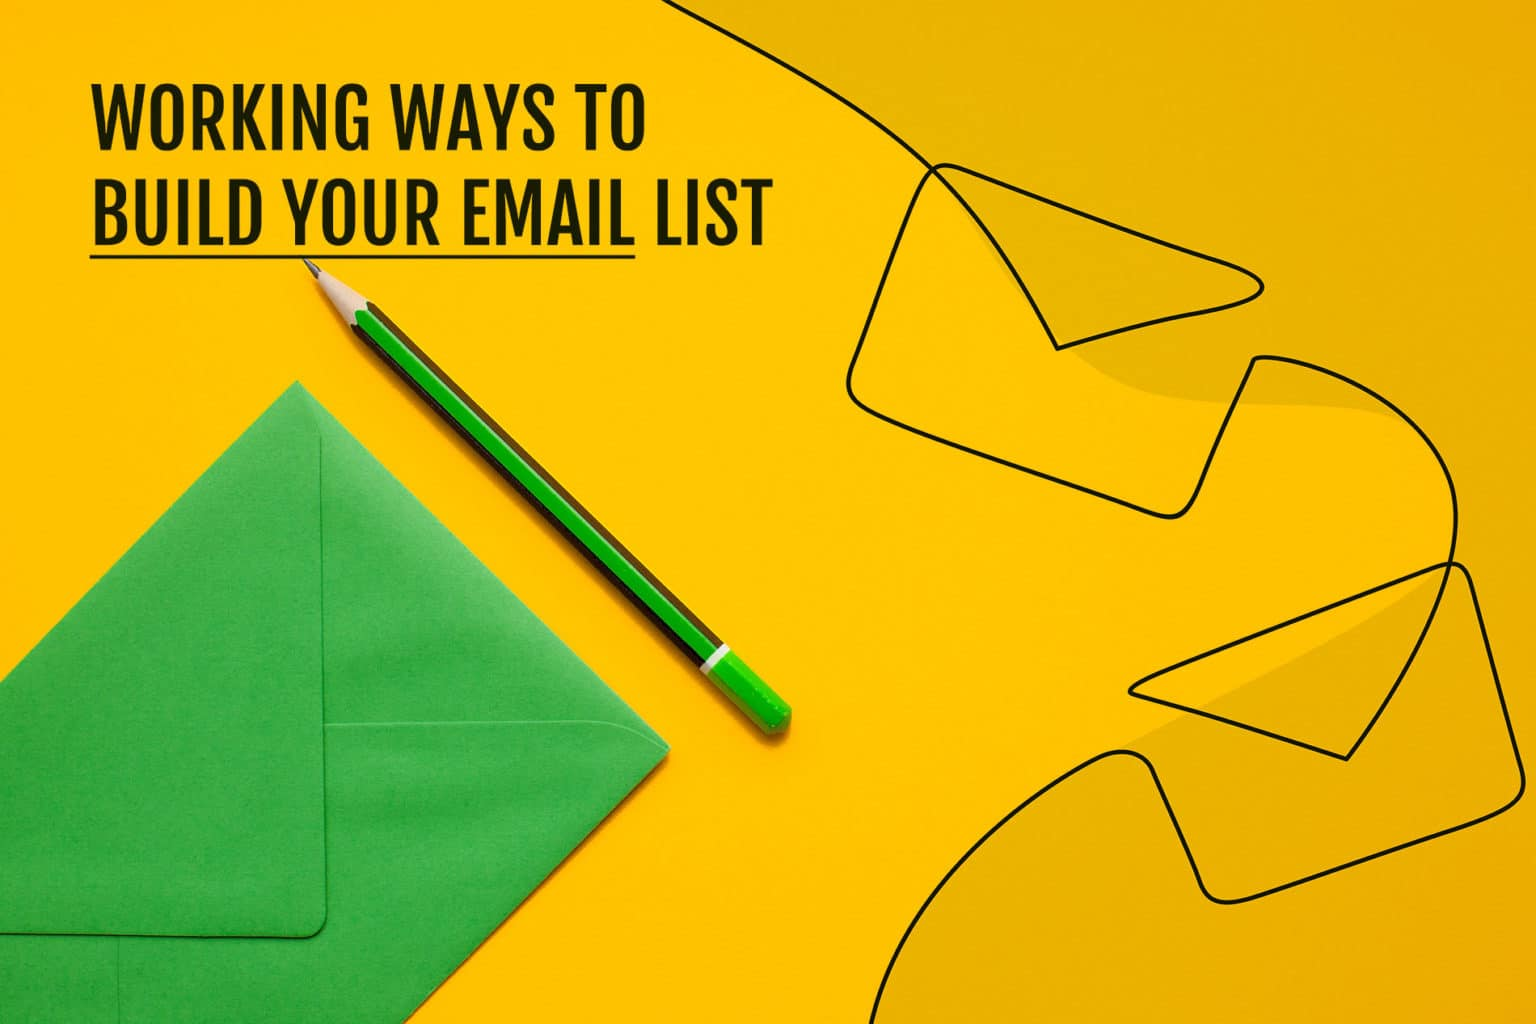 Working ways to build your email list